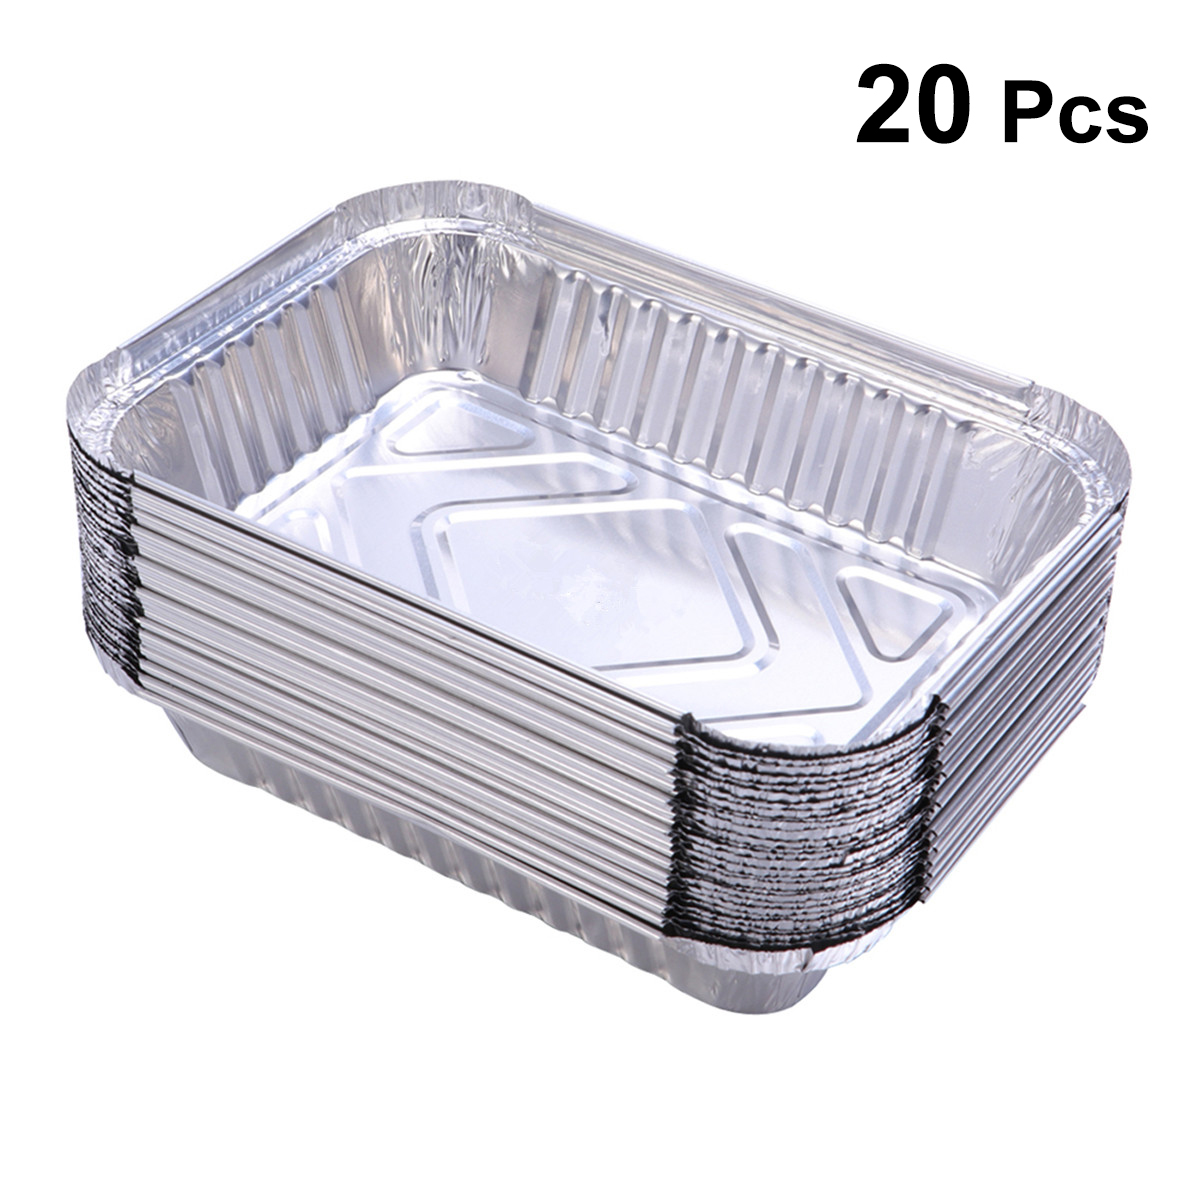 20 Pcs Tin Foil Box Durable Disposable Tray Silver Container Food Holder Without Cover For Barbecue